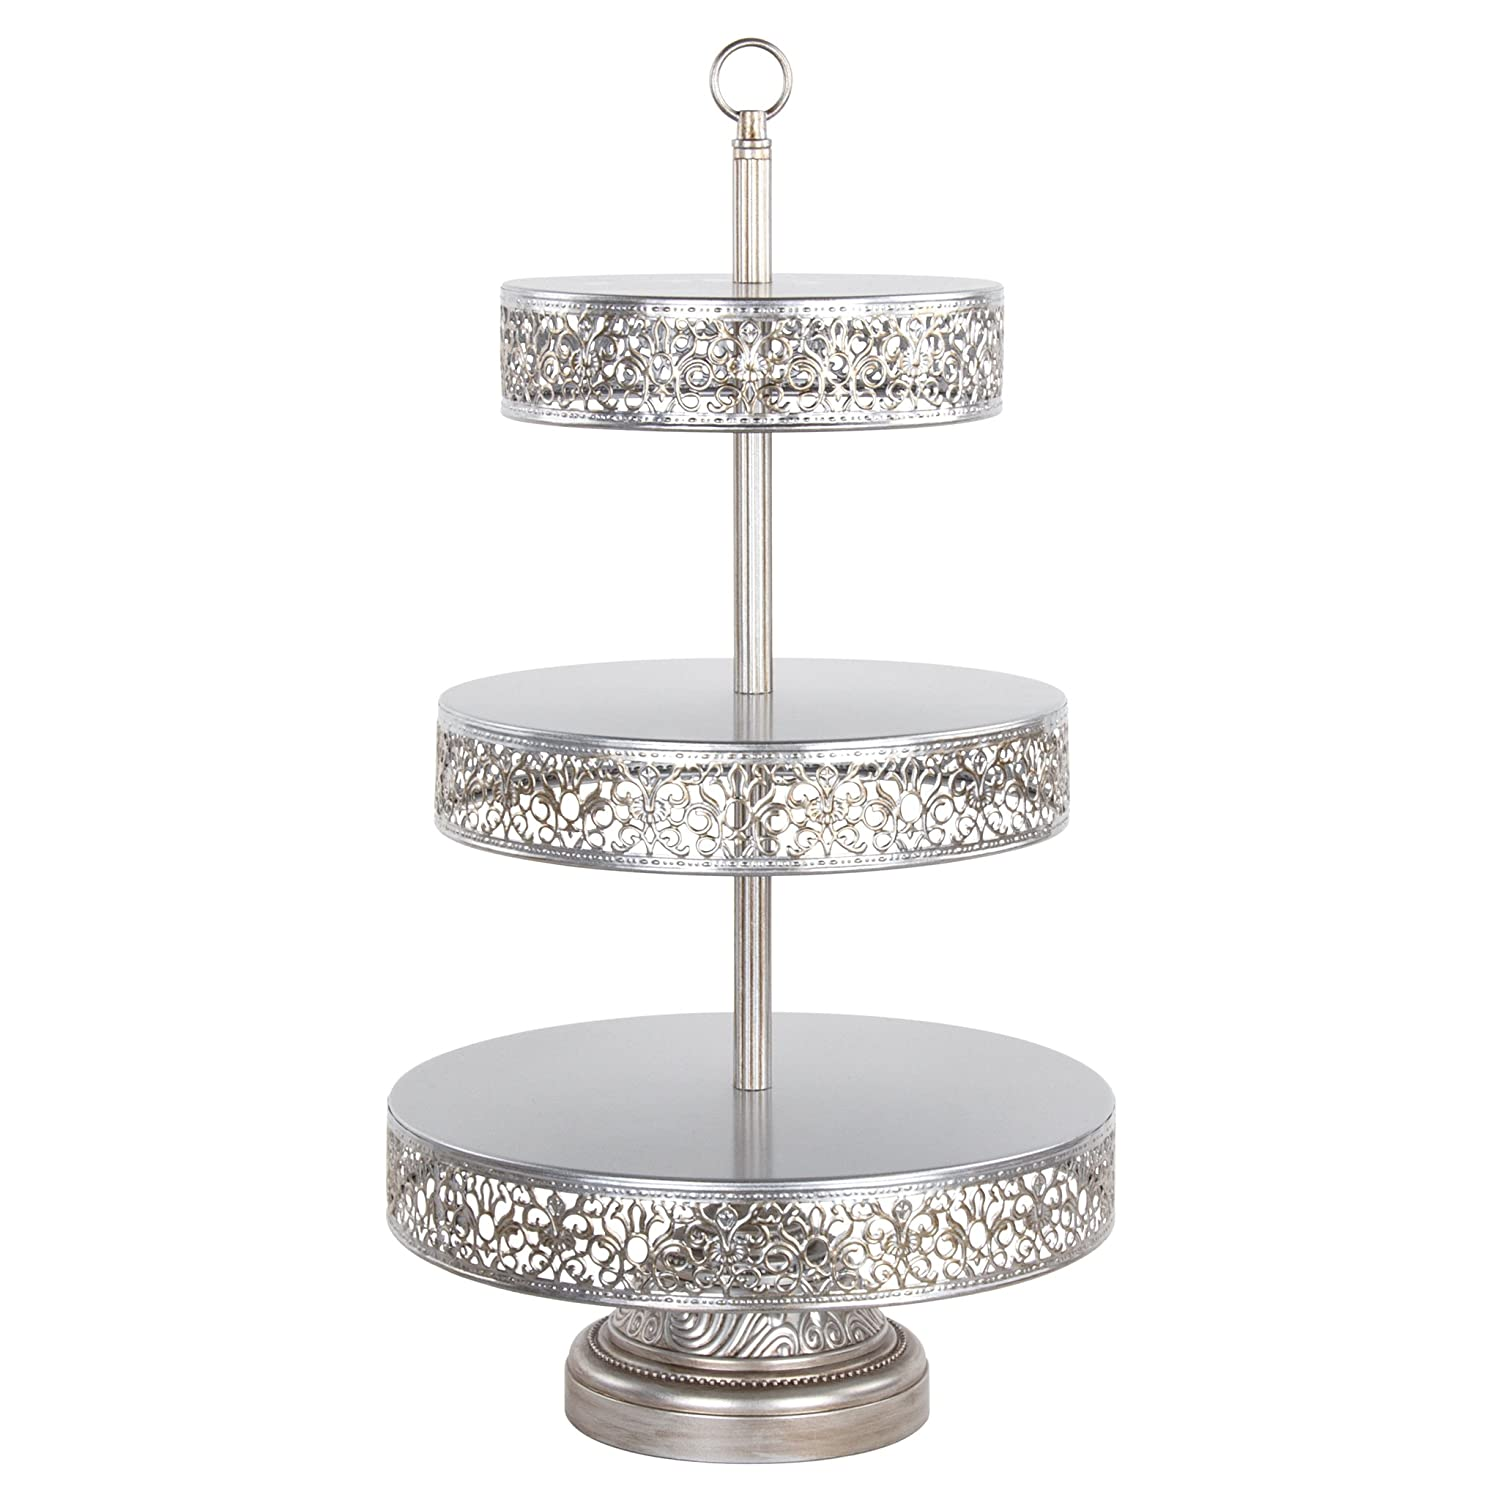 "Victoria Collection' 3 Tier Dessert Stand with Reversible Tiers, Cupcake Tower Display, 22"" Tall (Silver)"